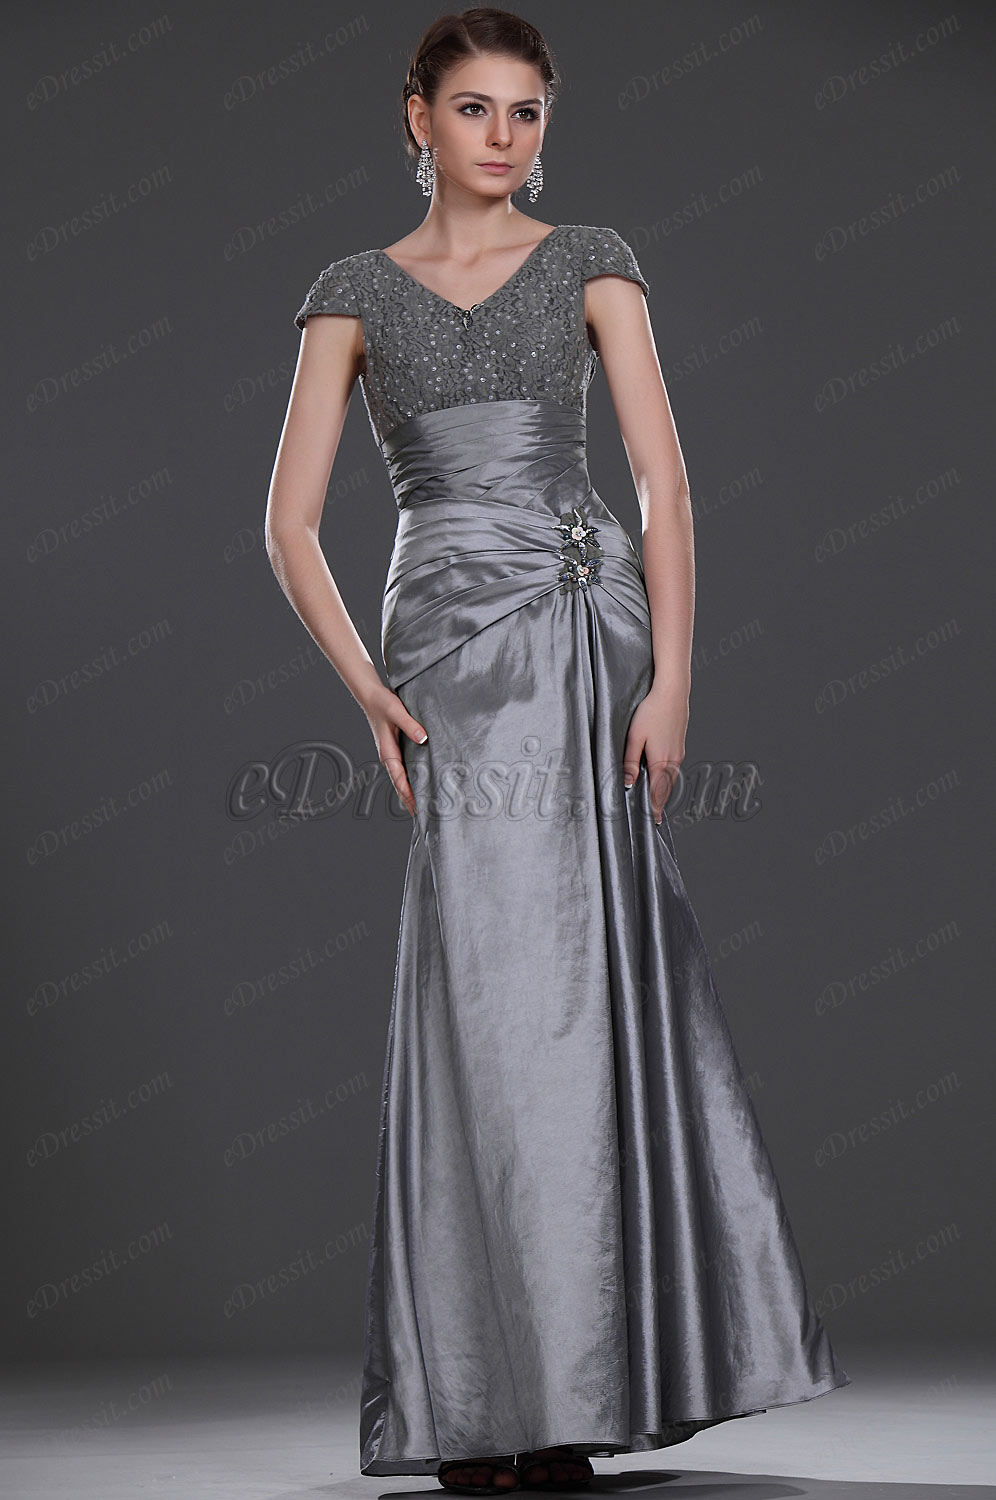 Edressit New Elegant Mother Of The Bride Dress 26114208